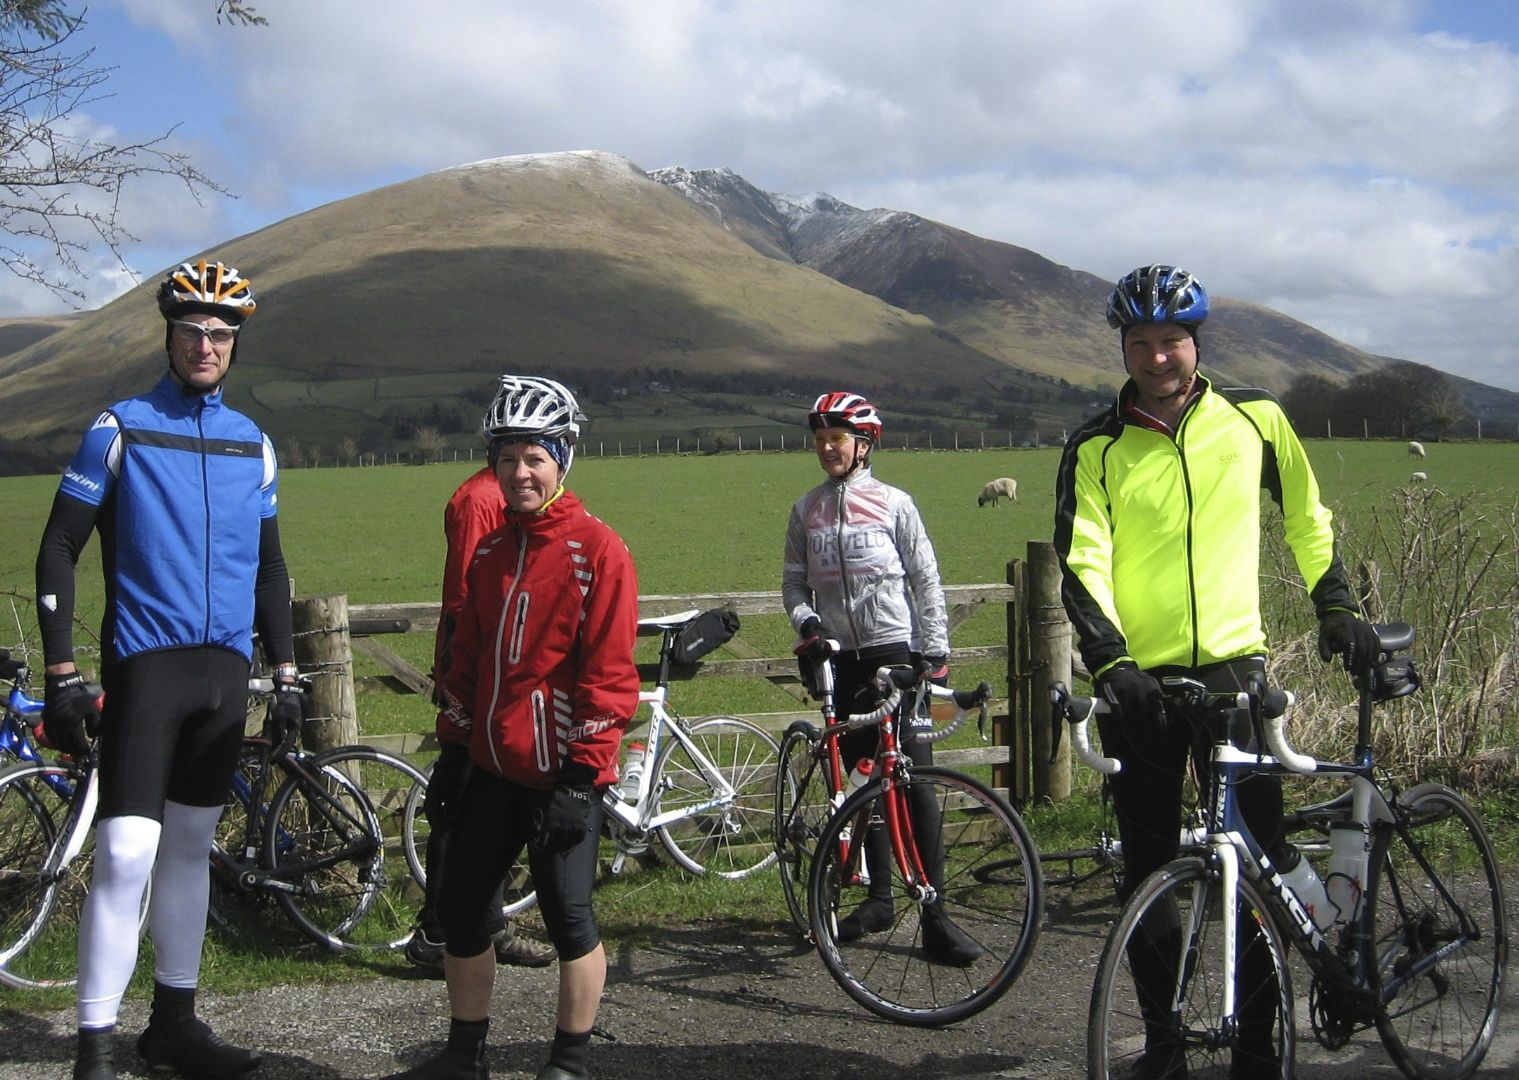 roadcyclingclassicpasses2.jpg - UK - Lake District Classic Passes - Guided Road Cycling Weekend - Road Cycling